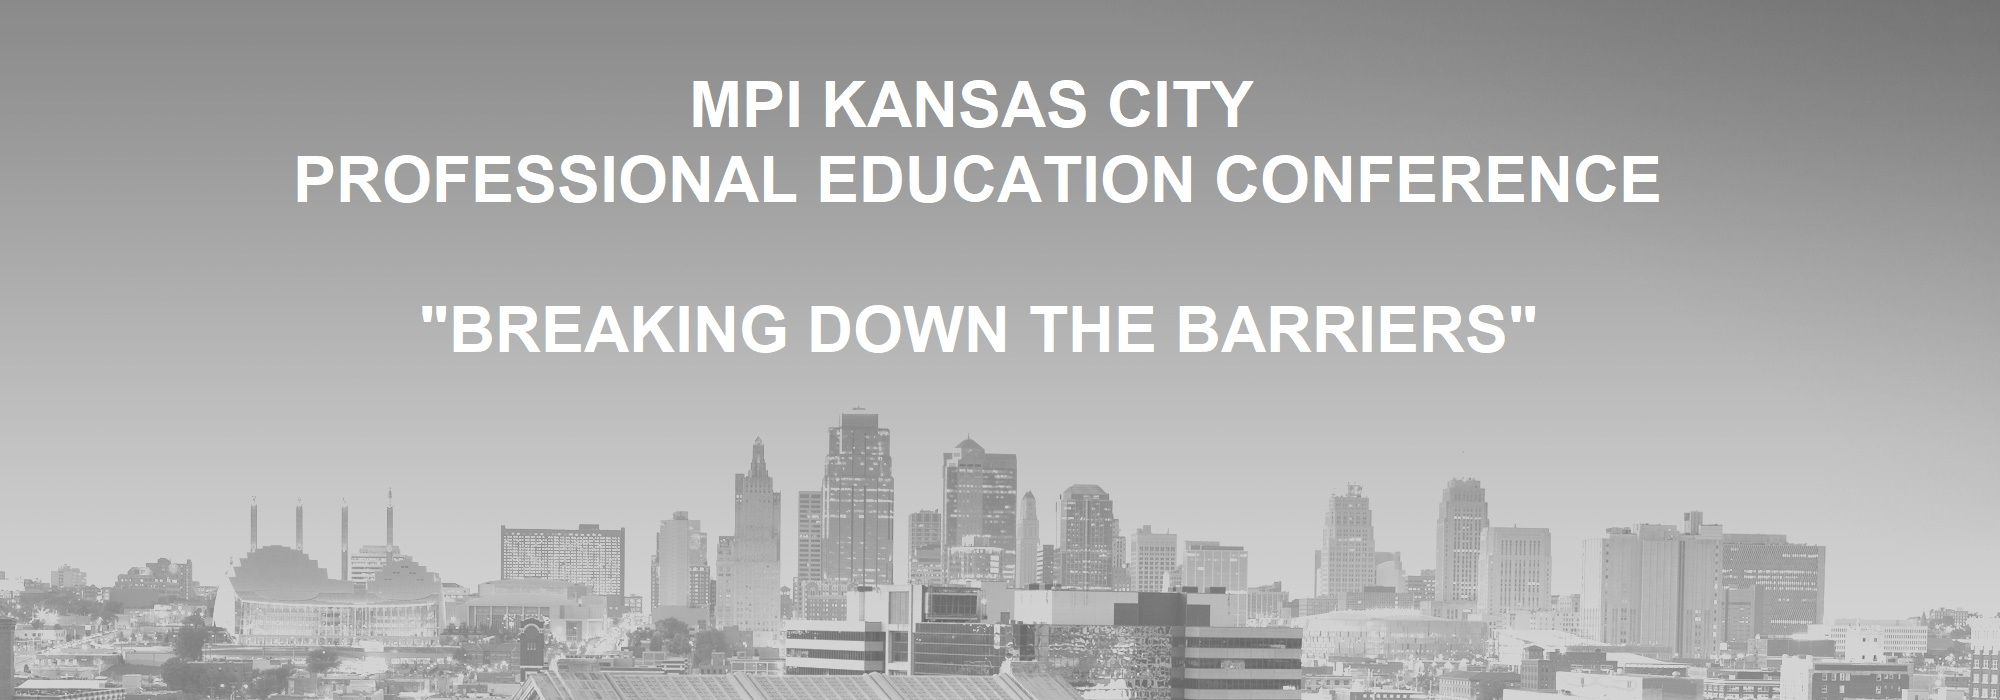 MPIKC 2018 Professional Education Conference: Breaking Down the Barriers